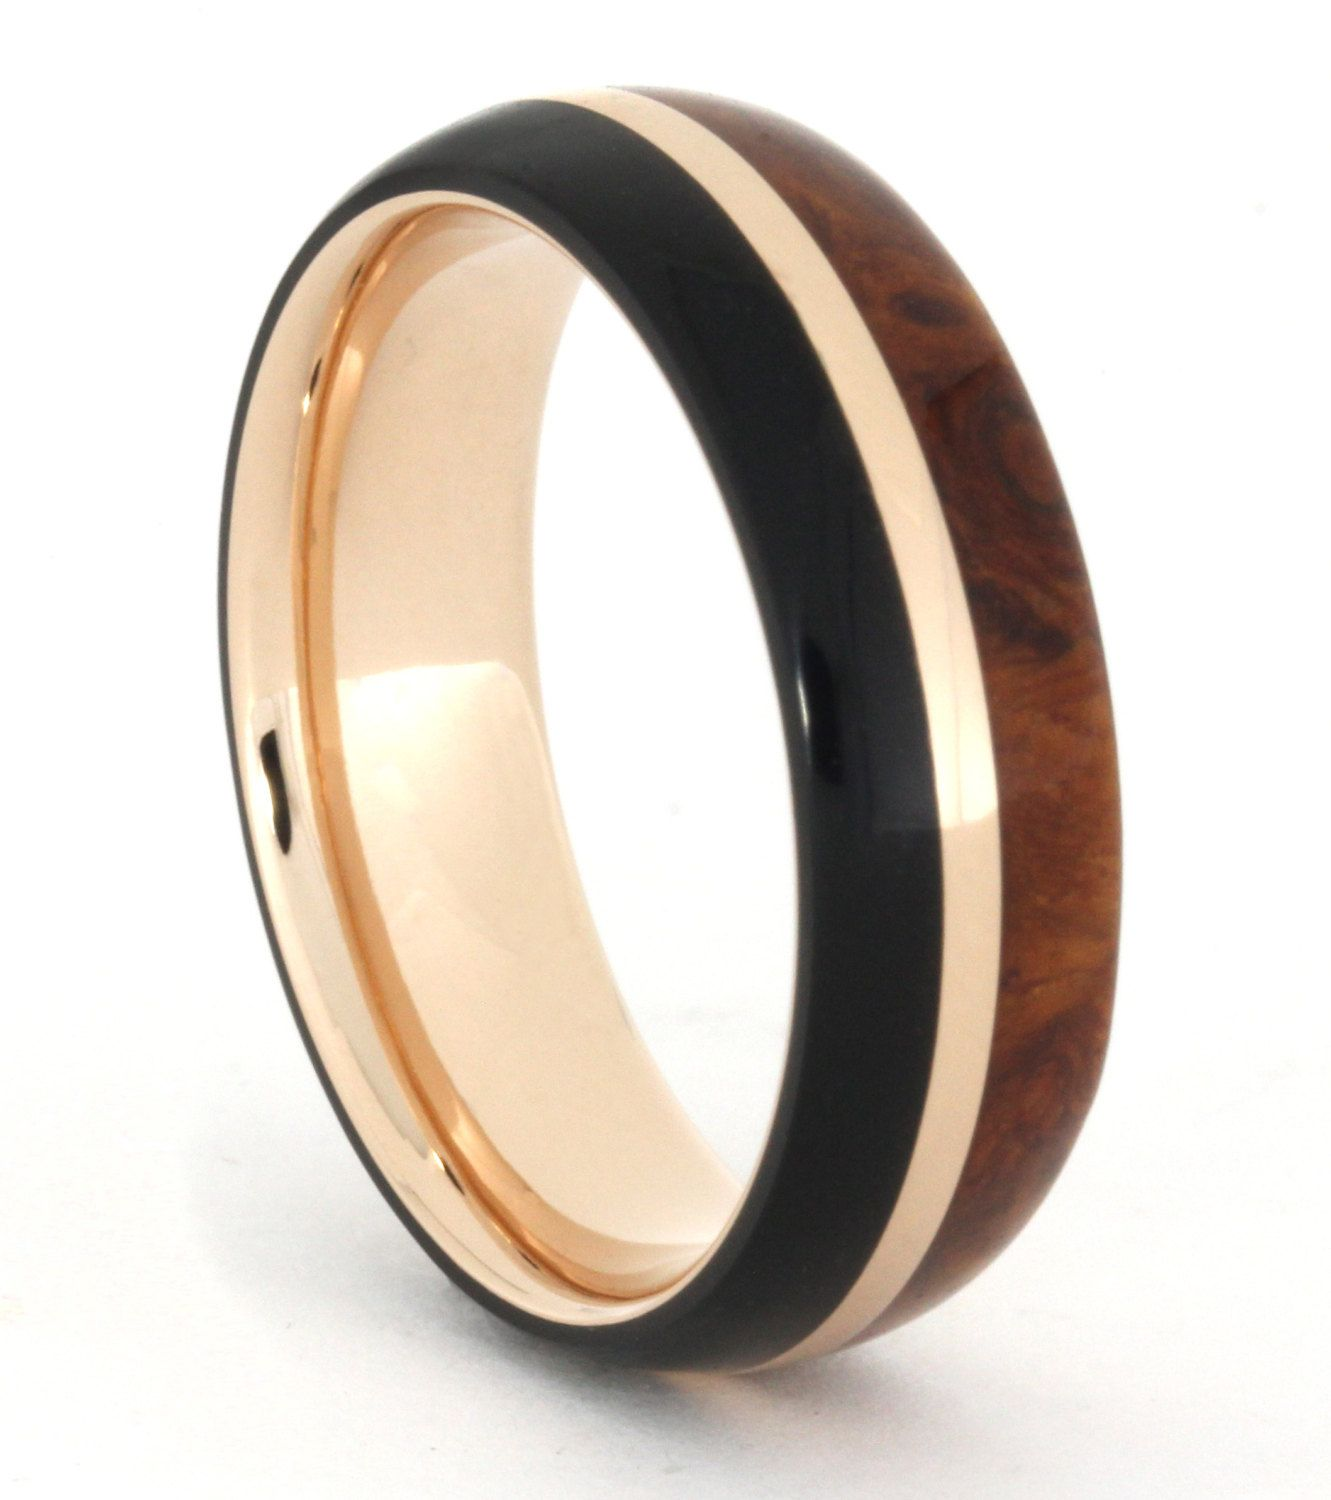 14k Rose Gold Ring With African Blackwood And Amboyna Burl Wood Wedding Band: African Wood Wedding Rings At Reisefeber.org